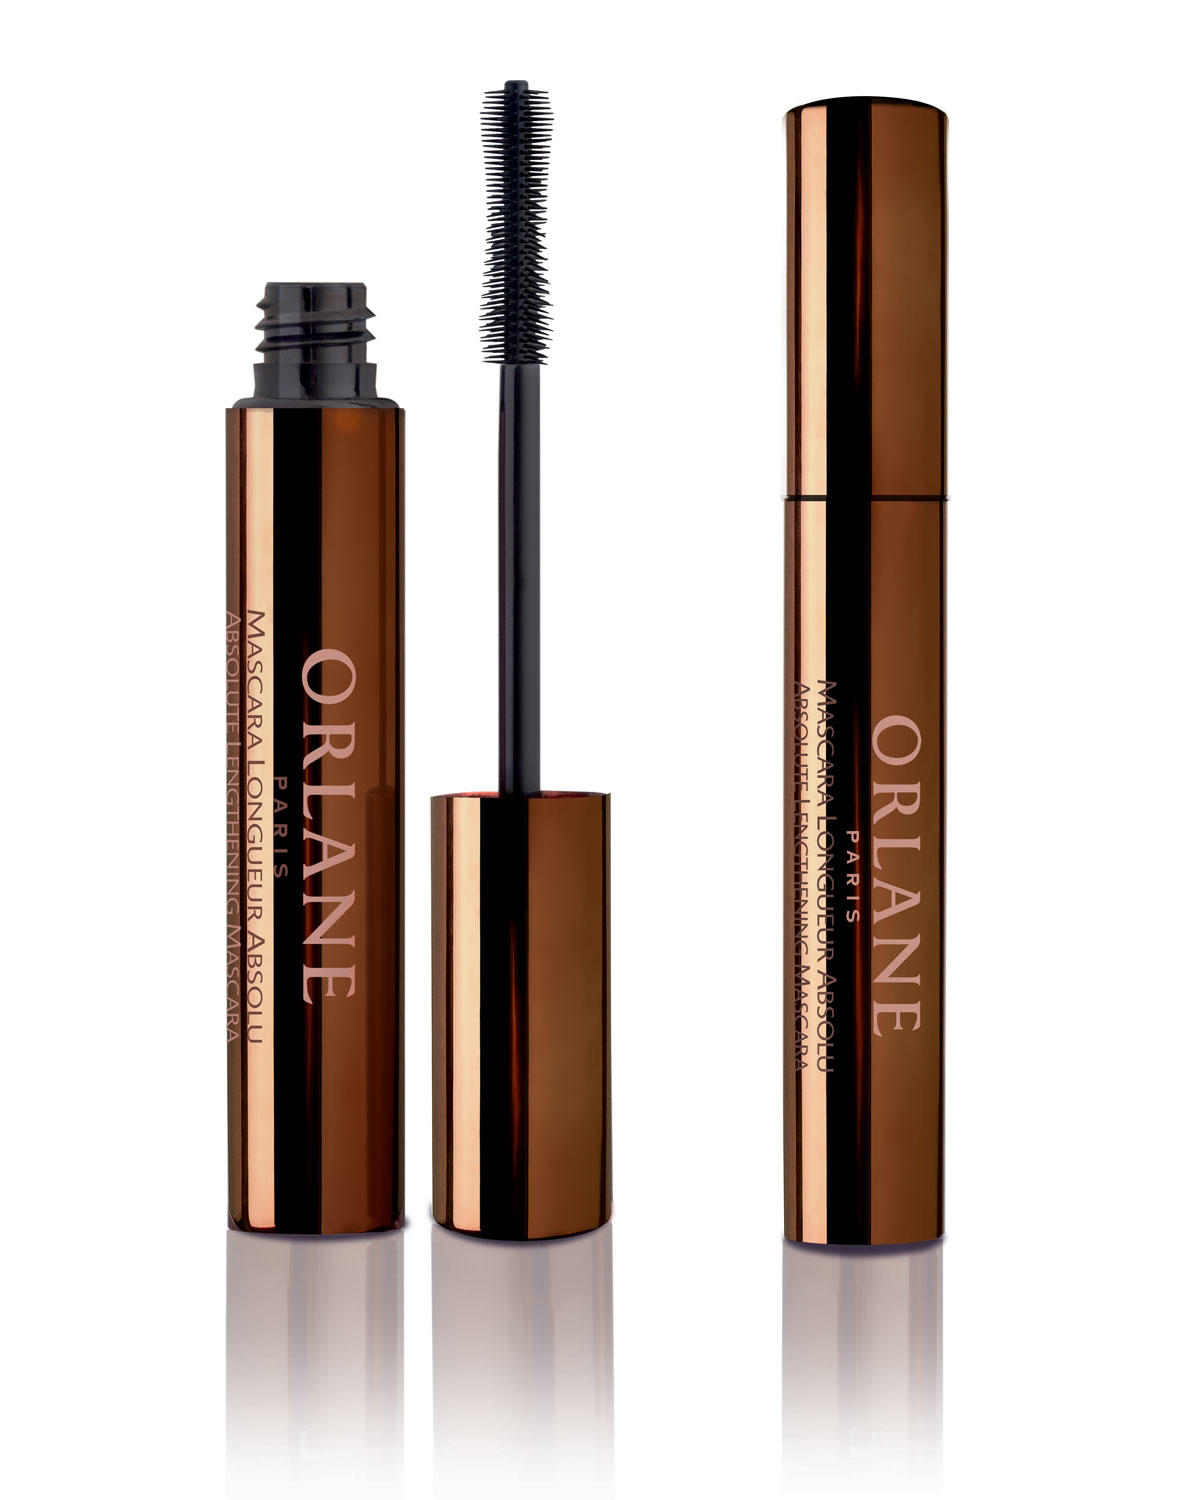 Orlane 0.21 oz. Mascara Absolu